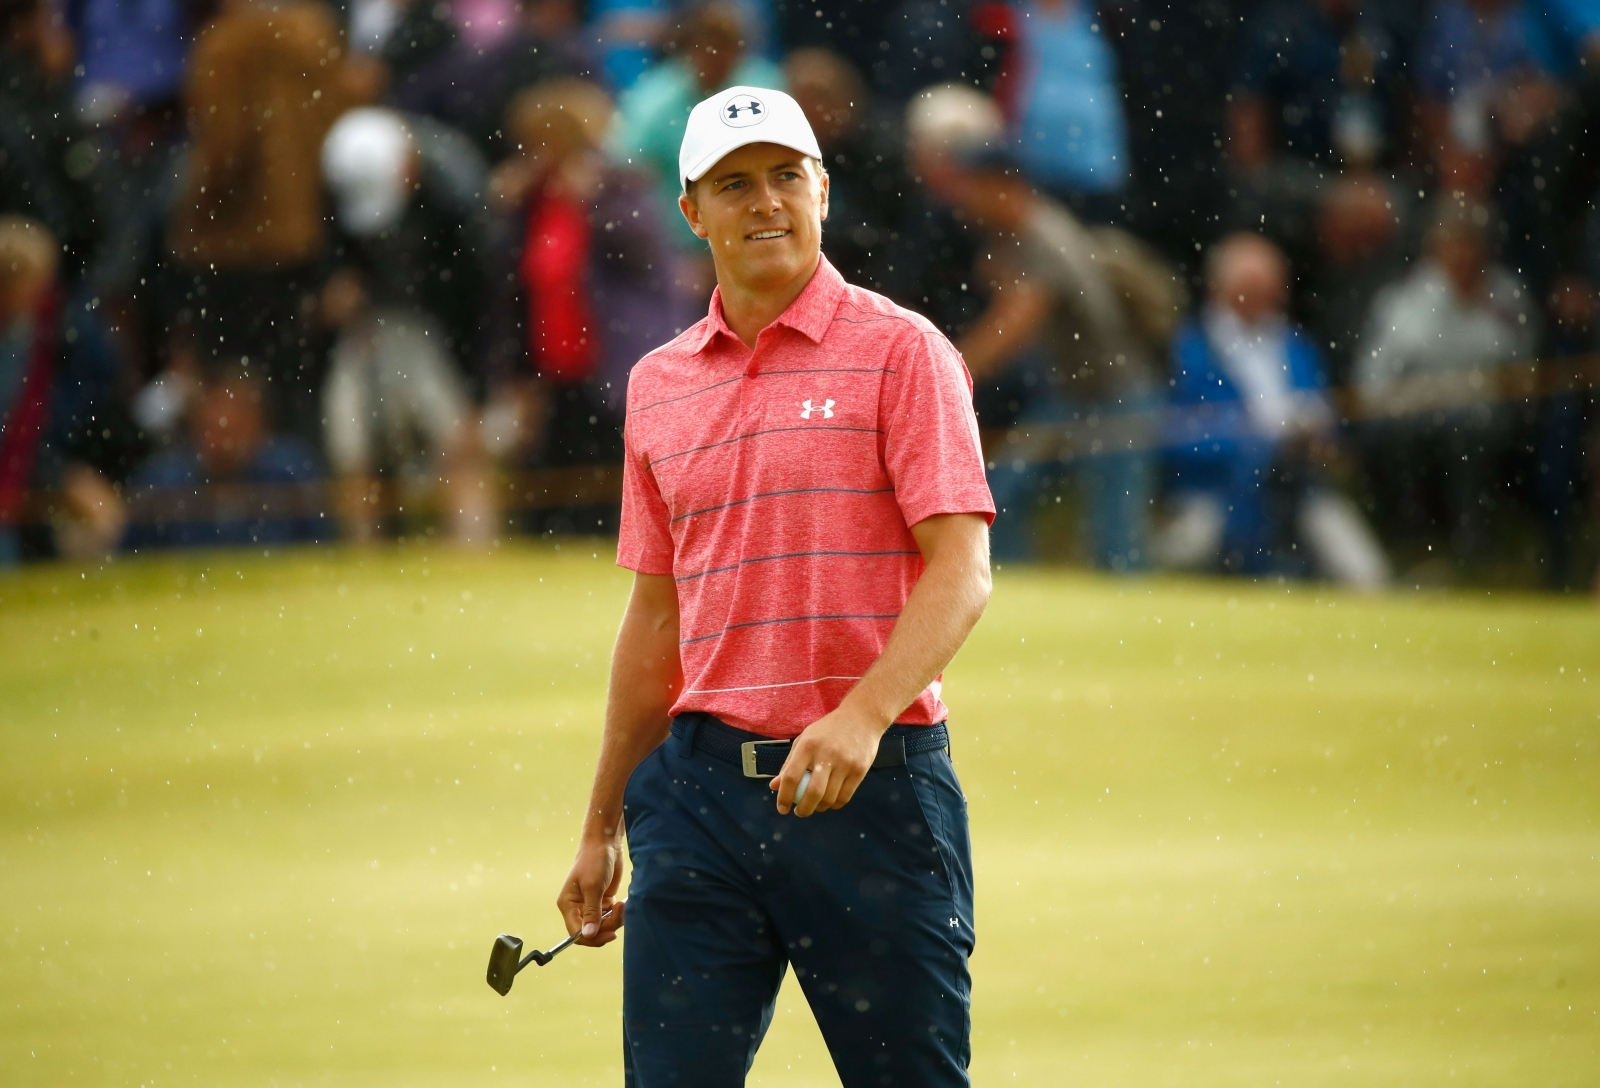 Jordan Spieth wins British Open for third major title